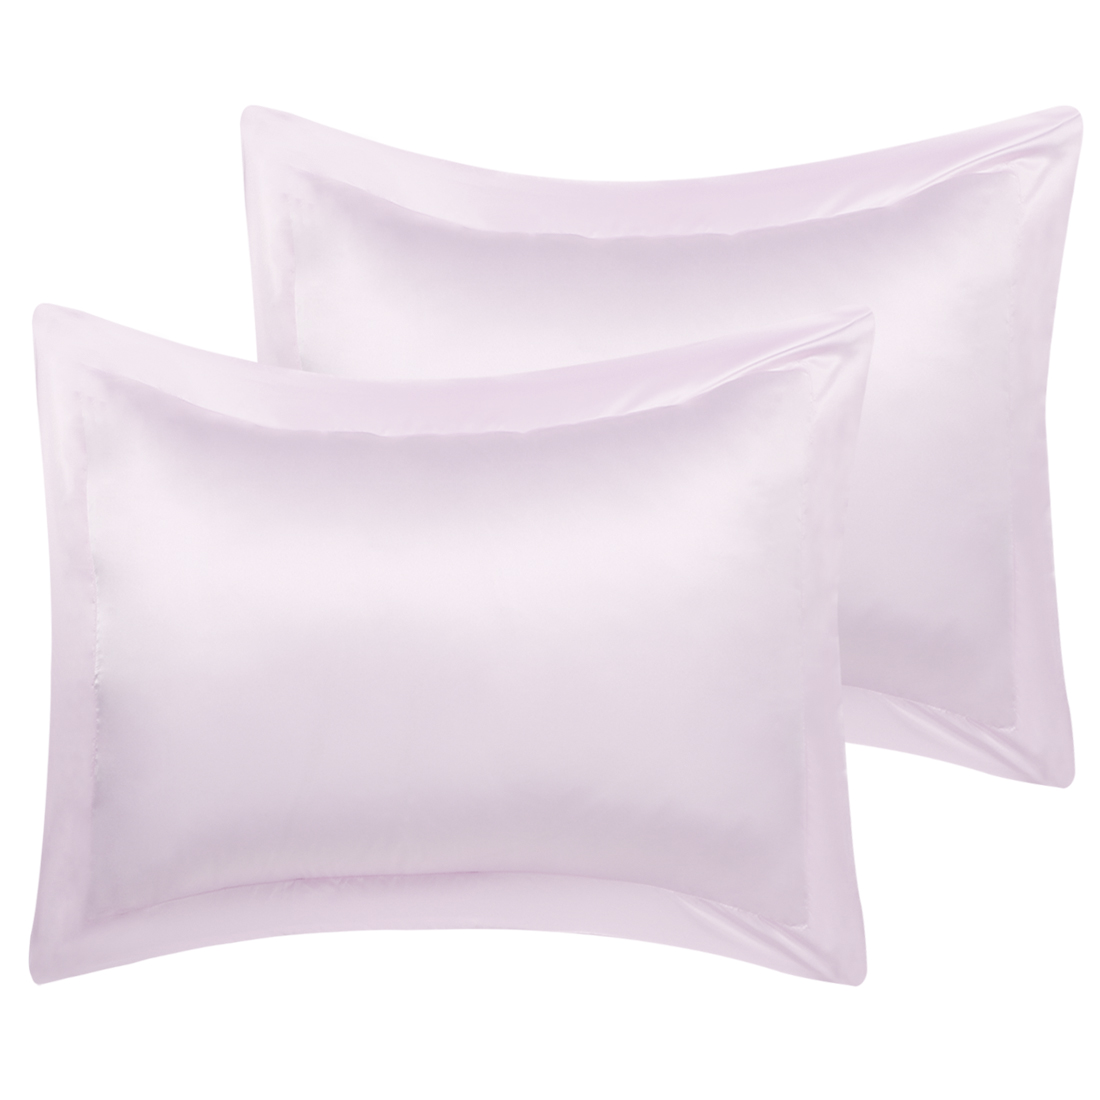 2 Pcs Lavender Gray Pillow Shams Satin Pillow Cases Standard Oxford Pillowcases